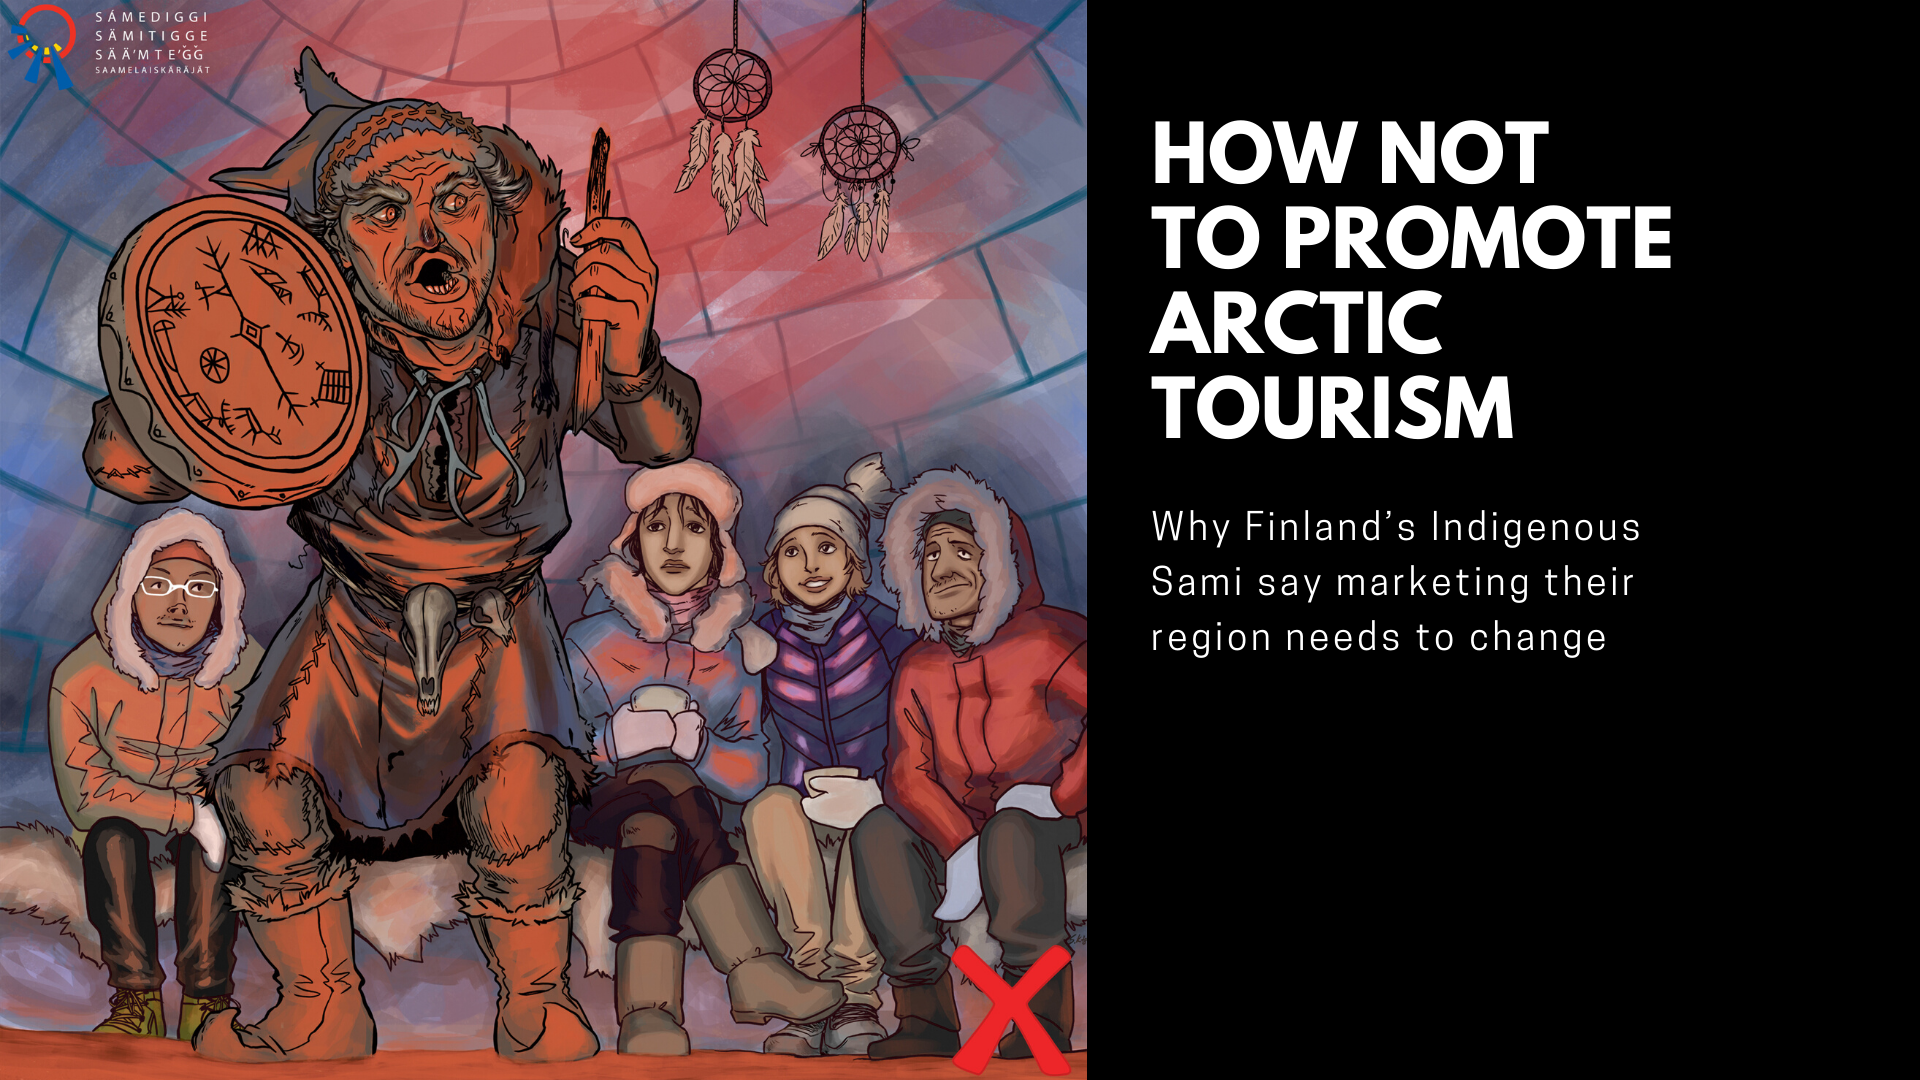 How not to promote Arctic tourism - Why Finland's Indigenous Sami say marketing their region needs to change